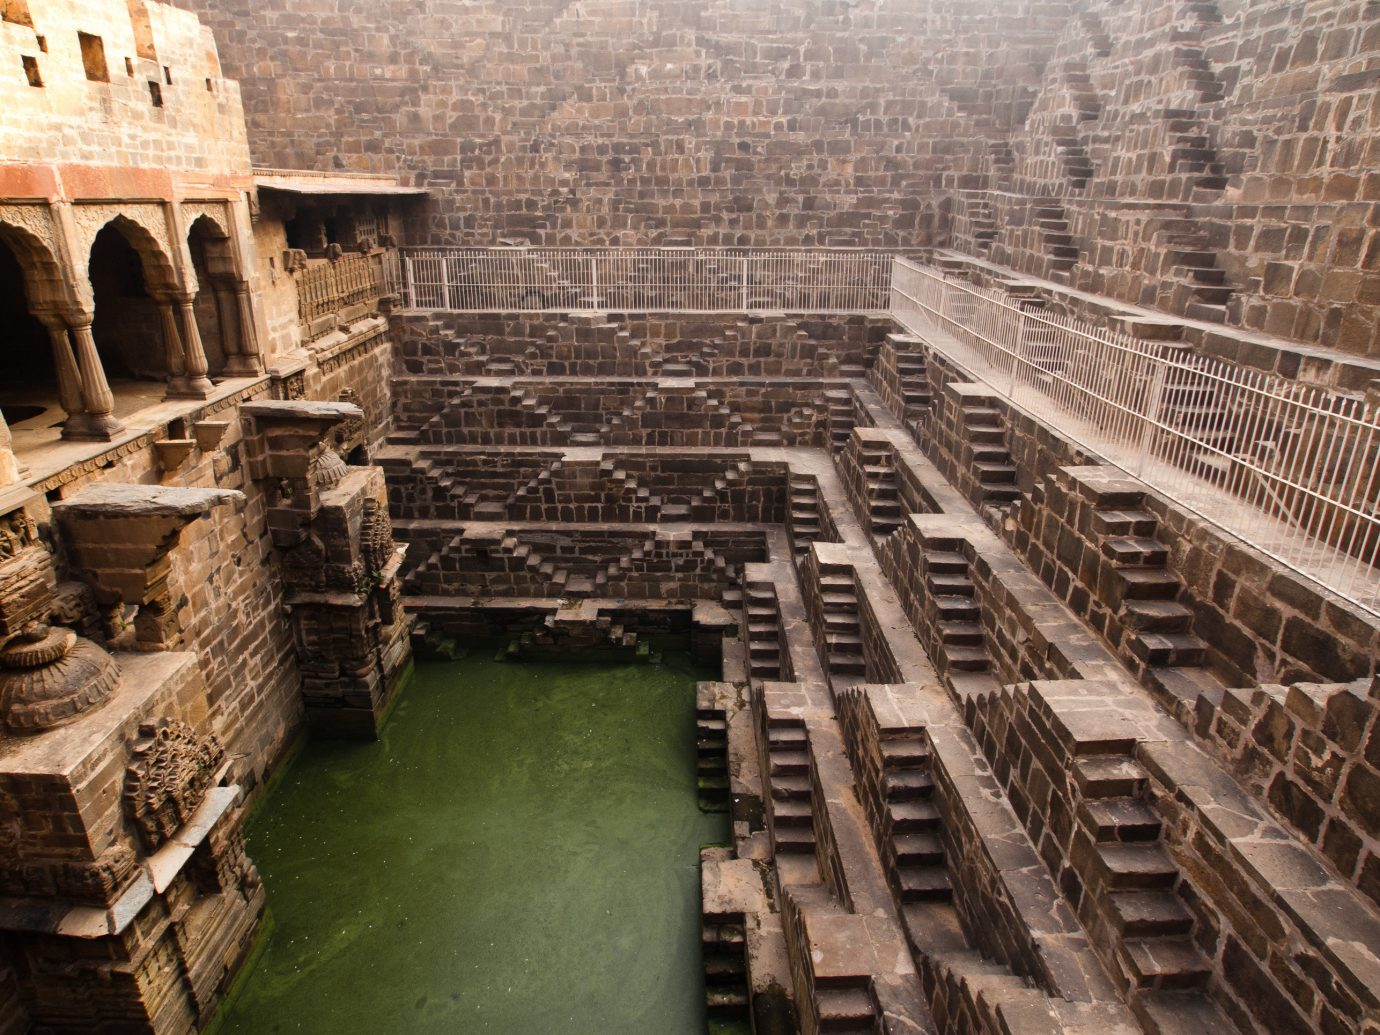 India Jaipur Jodhpur Trip Ideas historic site archaeological site ancient history Ruins medieval architecture history ancient rome tourist attraction building fortification